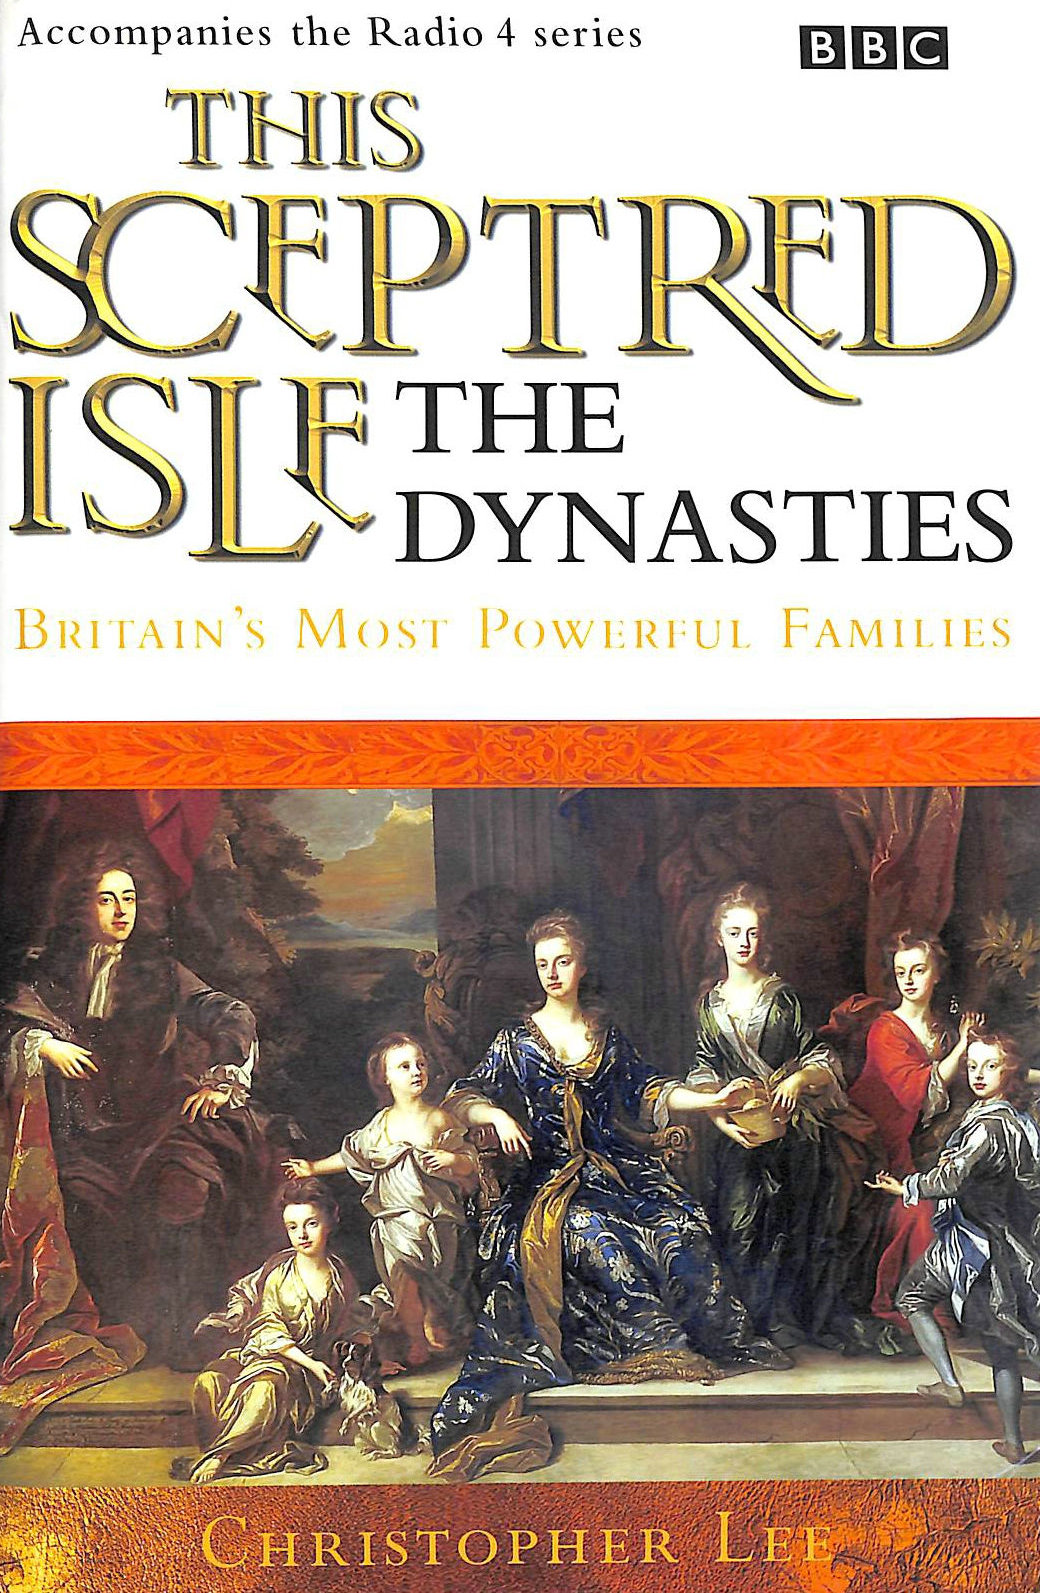 Image for This Sceptred Isle: Dynasties - Britain's Most Powerful Families: The Dynasties (BBC Radio Collection)